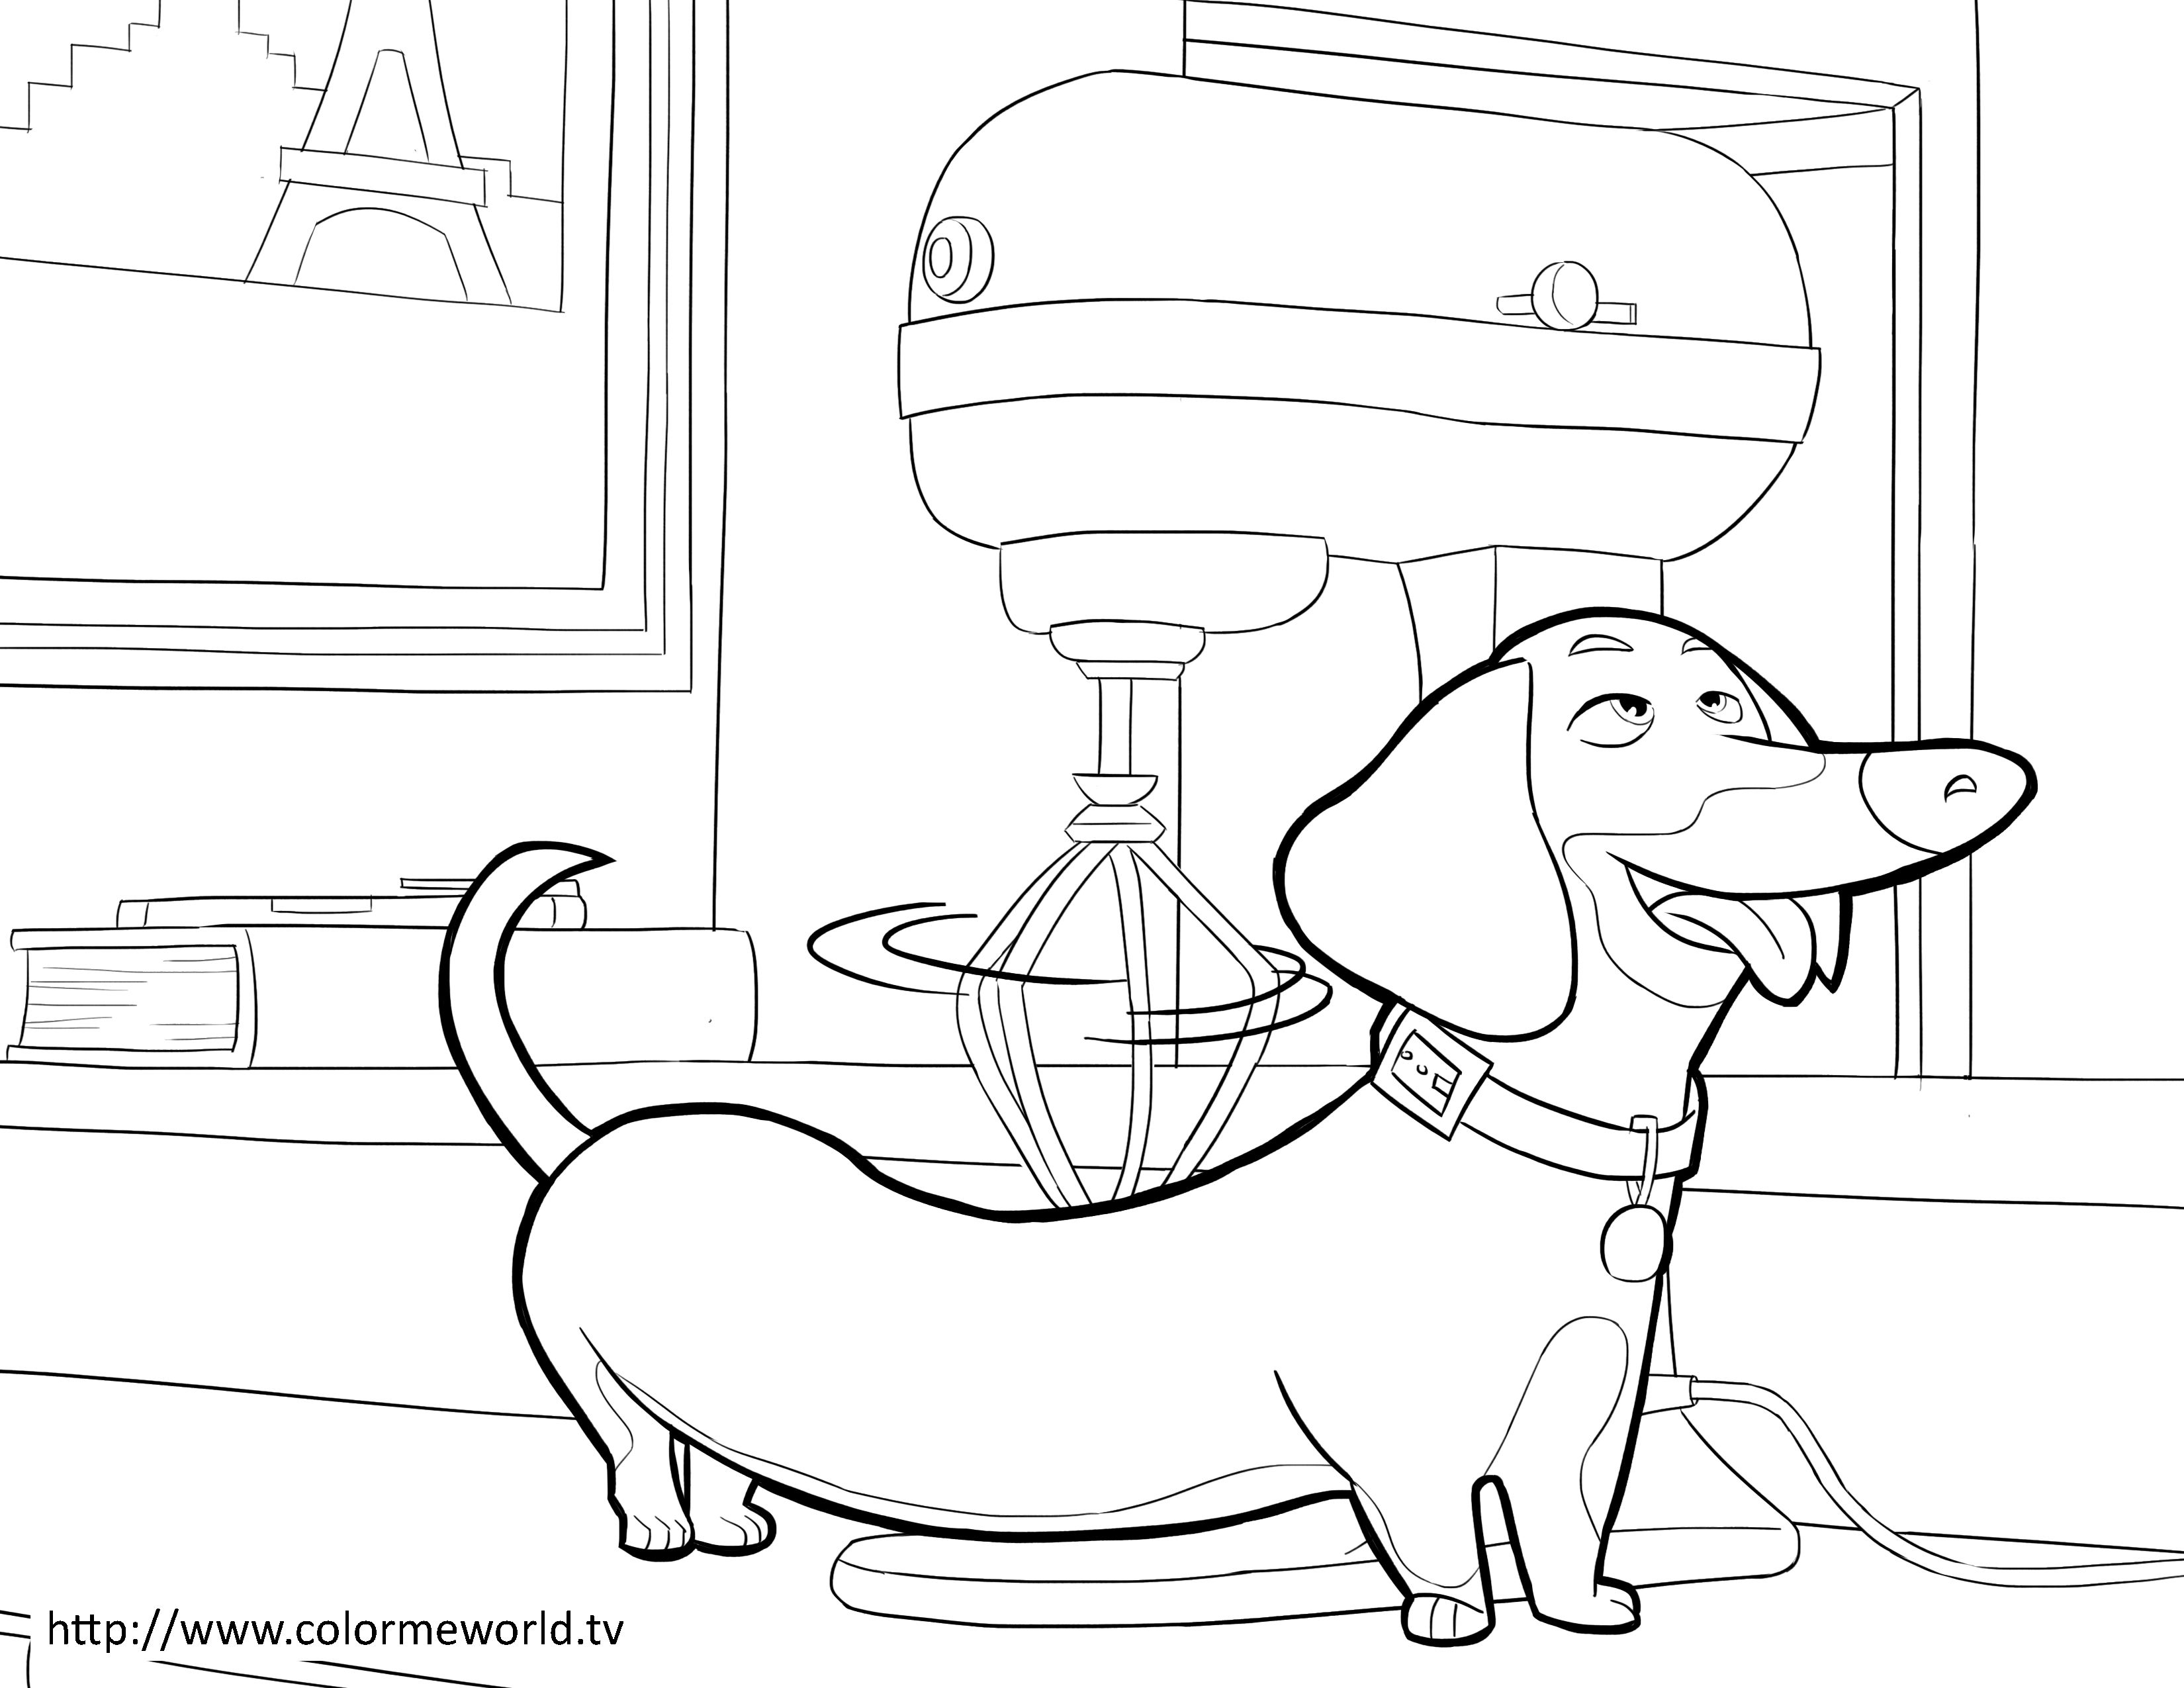 Buddy Pdf Printable Coloring Page The Secret Life Of Pets Coloring Pages Coloring Pages For Kids Coloring Books